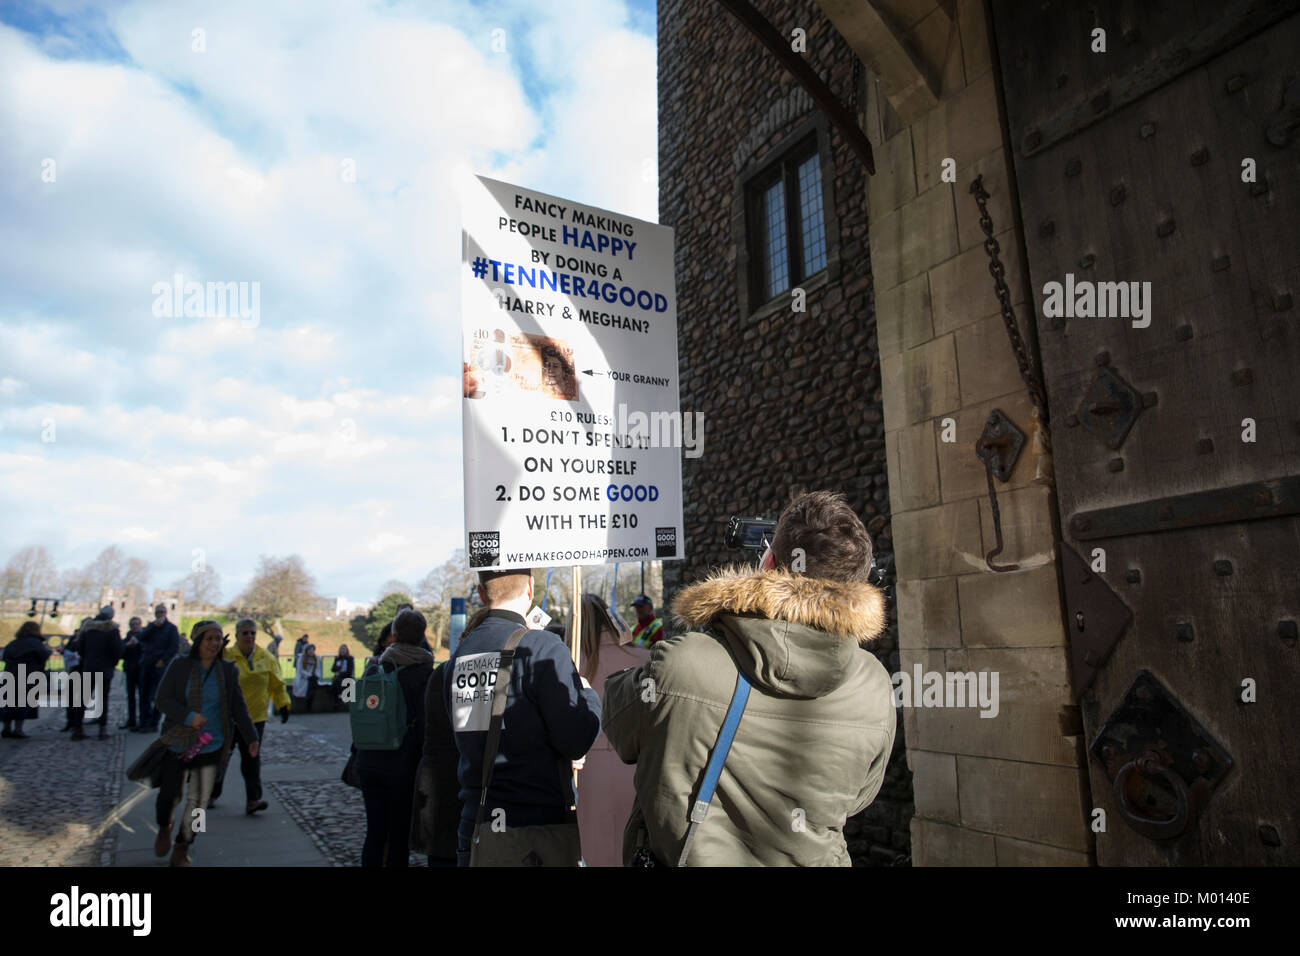 Cardiff, Wales, UK. 18th Jan, 2018. Excited fans arrive with banners and signs as they wait for the arrival of Prince Stock Photo